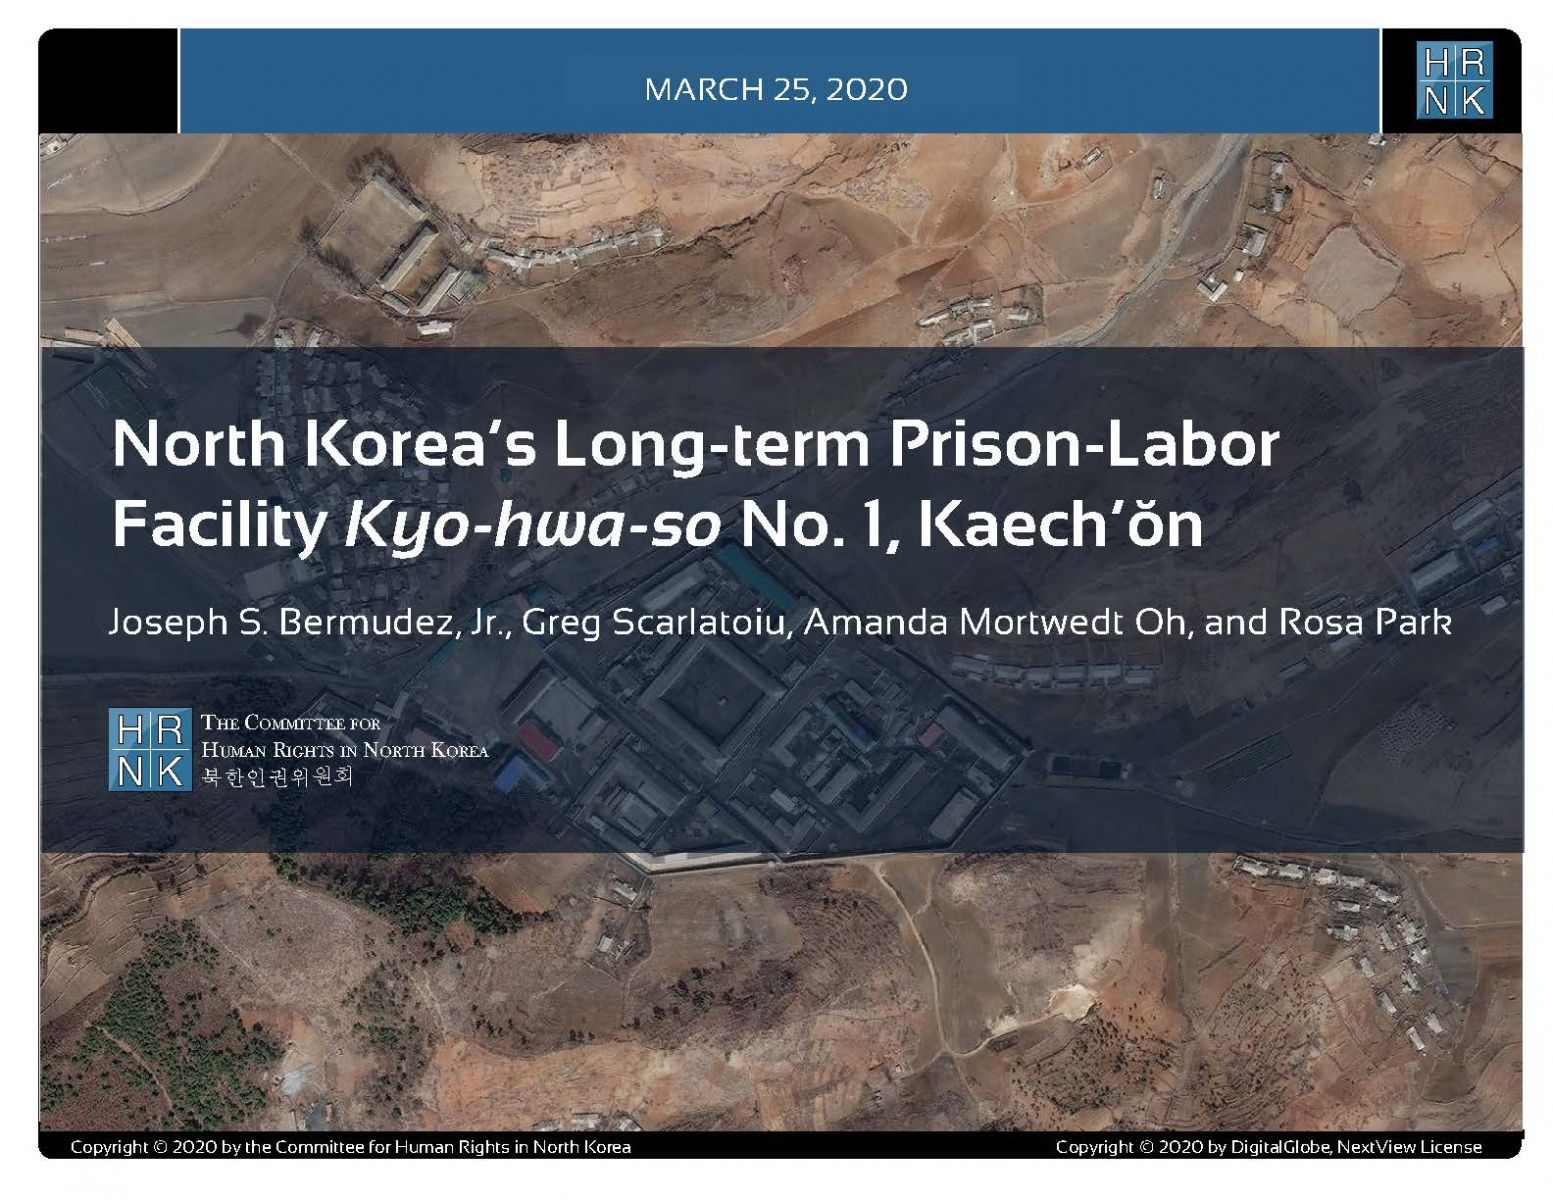 North Korea's Long-term Prison-Labor Facility Kyo-hwa-so No. 1, Kaech'ŏn